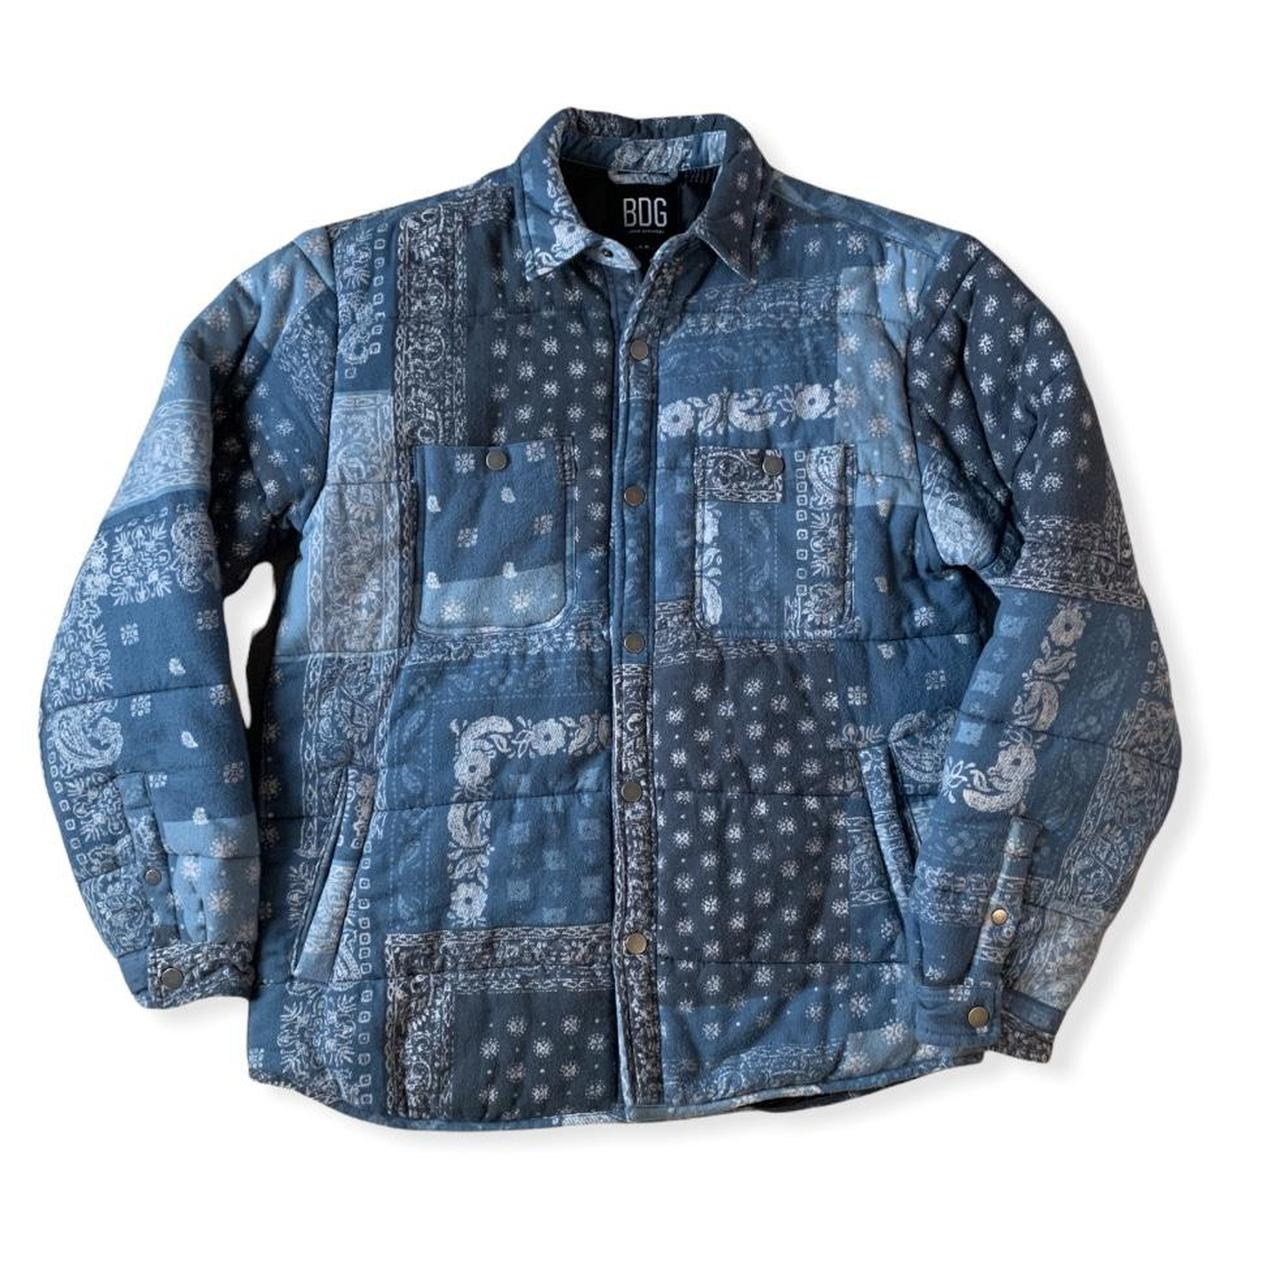 Product Image 1 - BDG BANDANA FLANNEL JACKET TAGGED SMALL